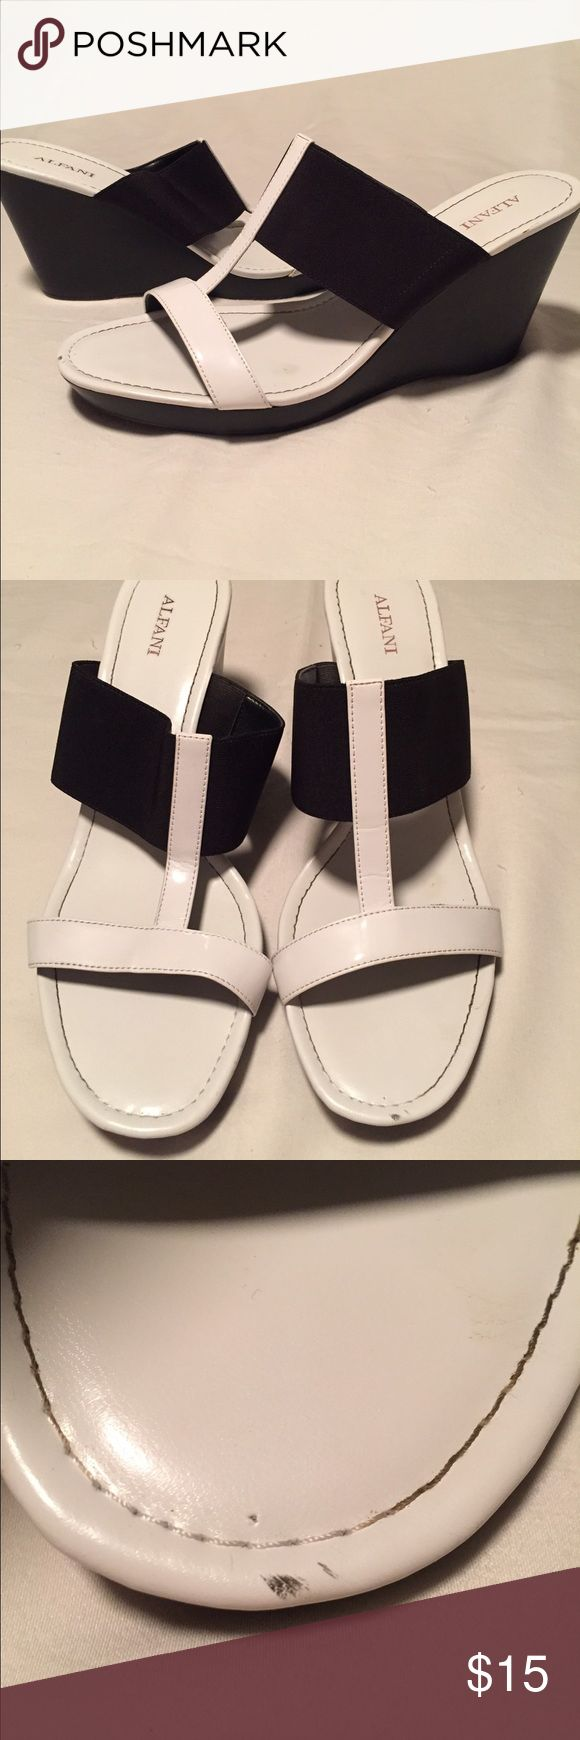 "Alfani Black and White Wedge Sandal This is a black and white wedge sandal, perfect for summer wear!  Very comfortable, has a small smudge on the left toe as pictured.  Size 10M w/a 3.5"" wedge. Alfani Shoes Wedges"